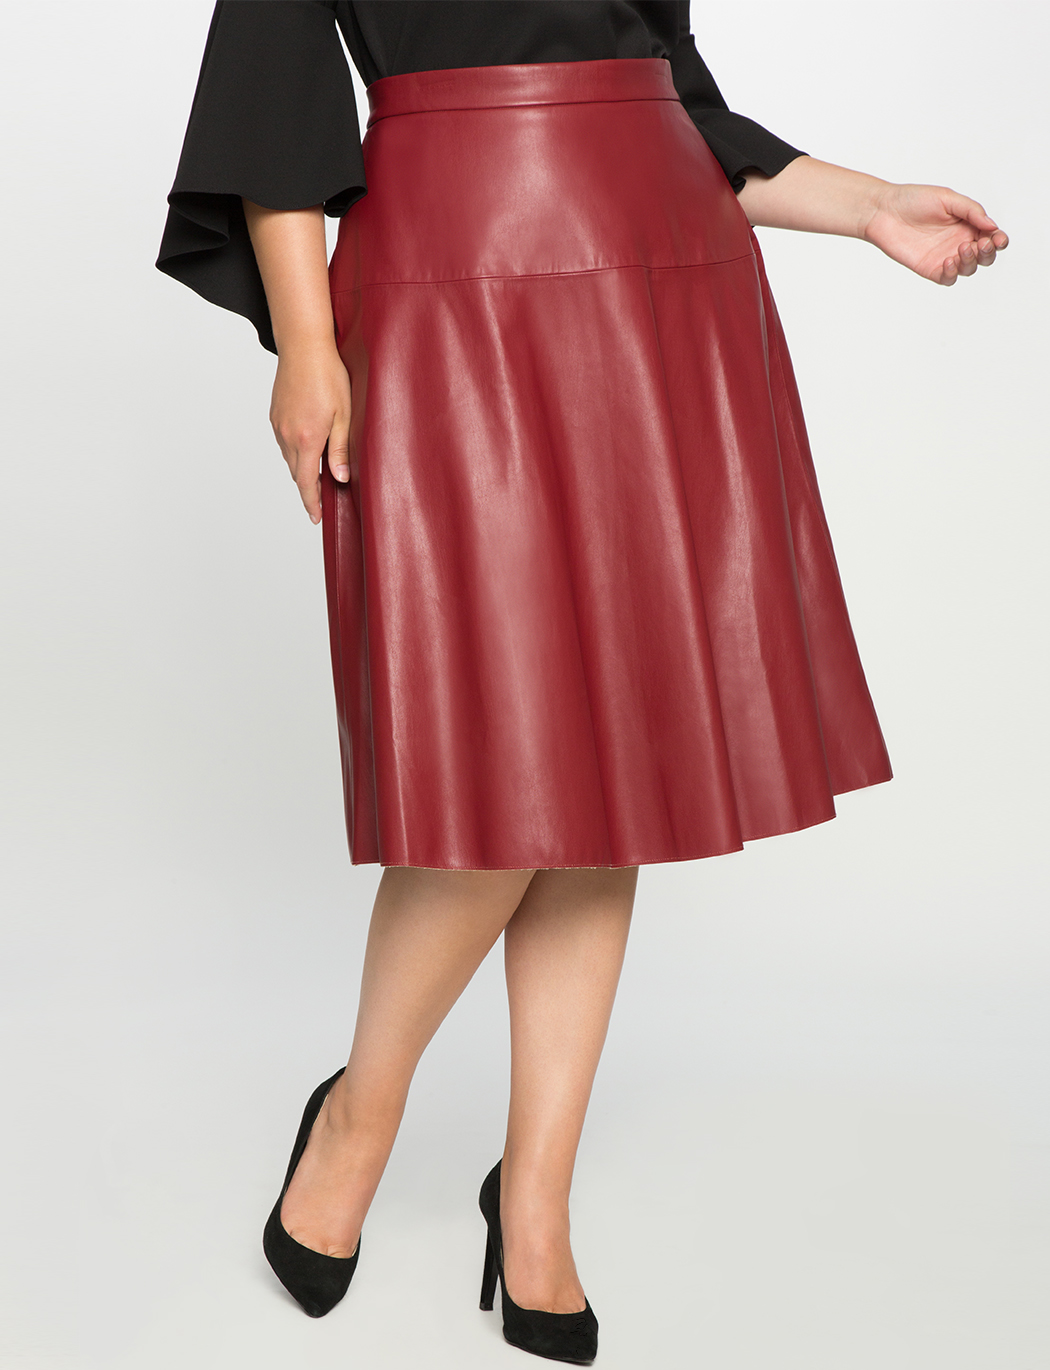 Faux Leather Midi Skirt | Women\'s Plus Size Skirts | ELOQUII